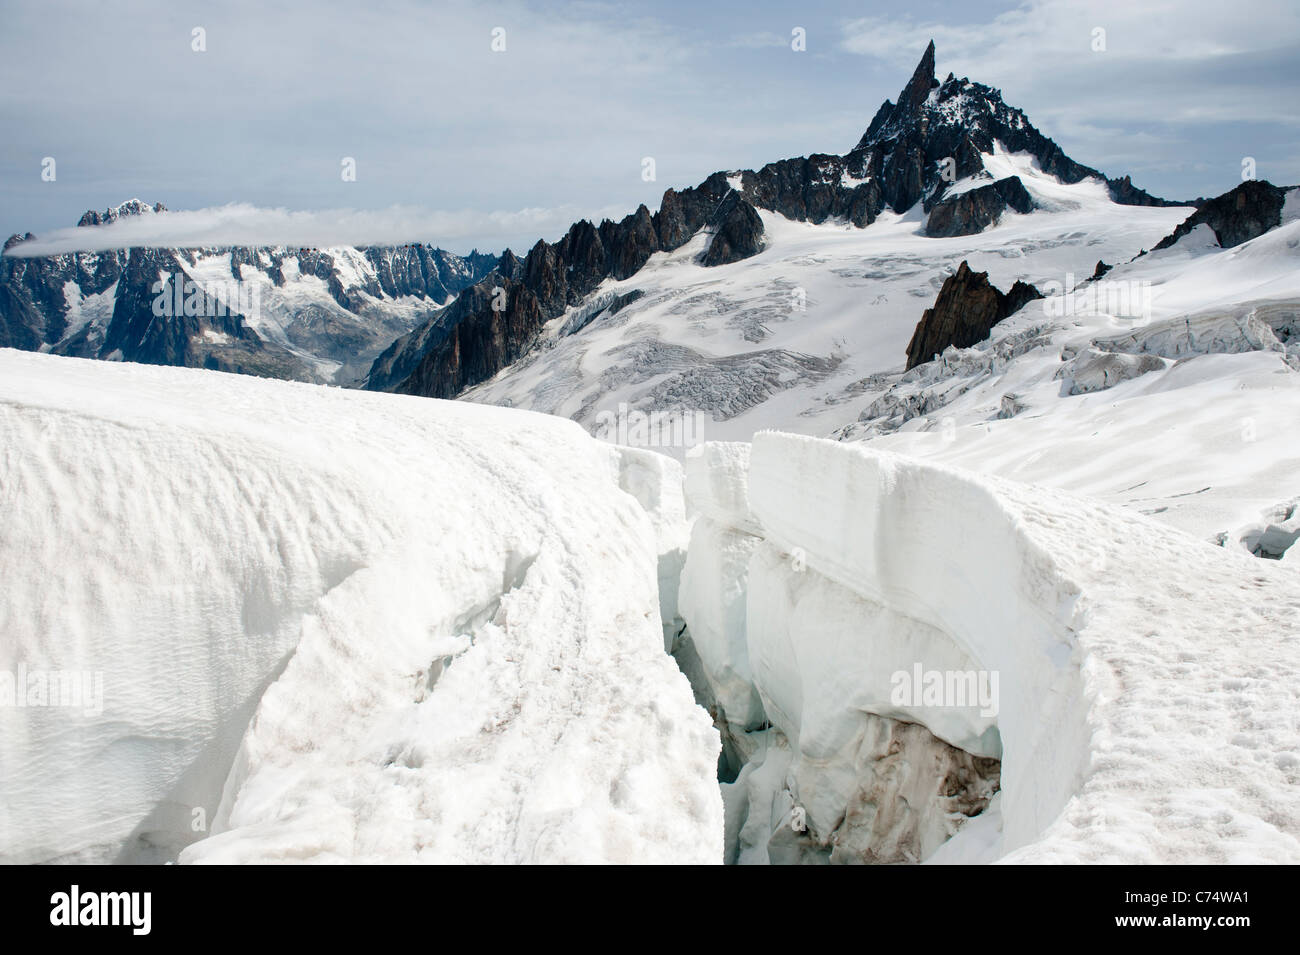 A giant crevasse on the Vallee Blanche, with Dent du Geant in the background. - Stock Image